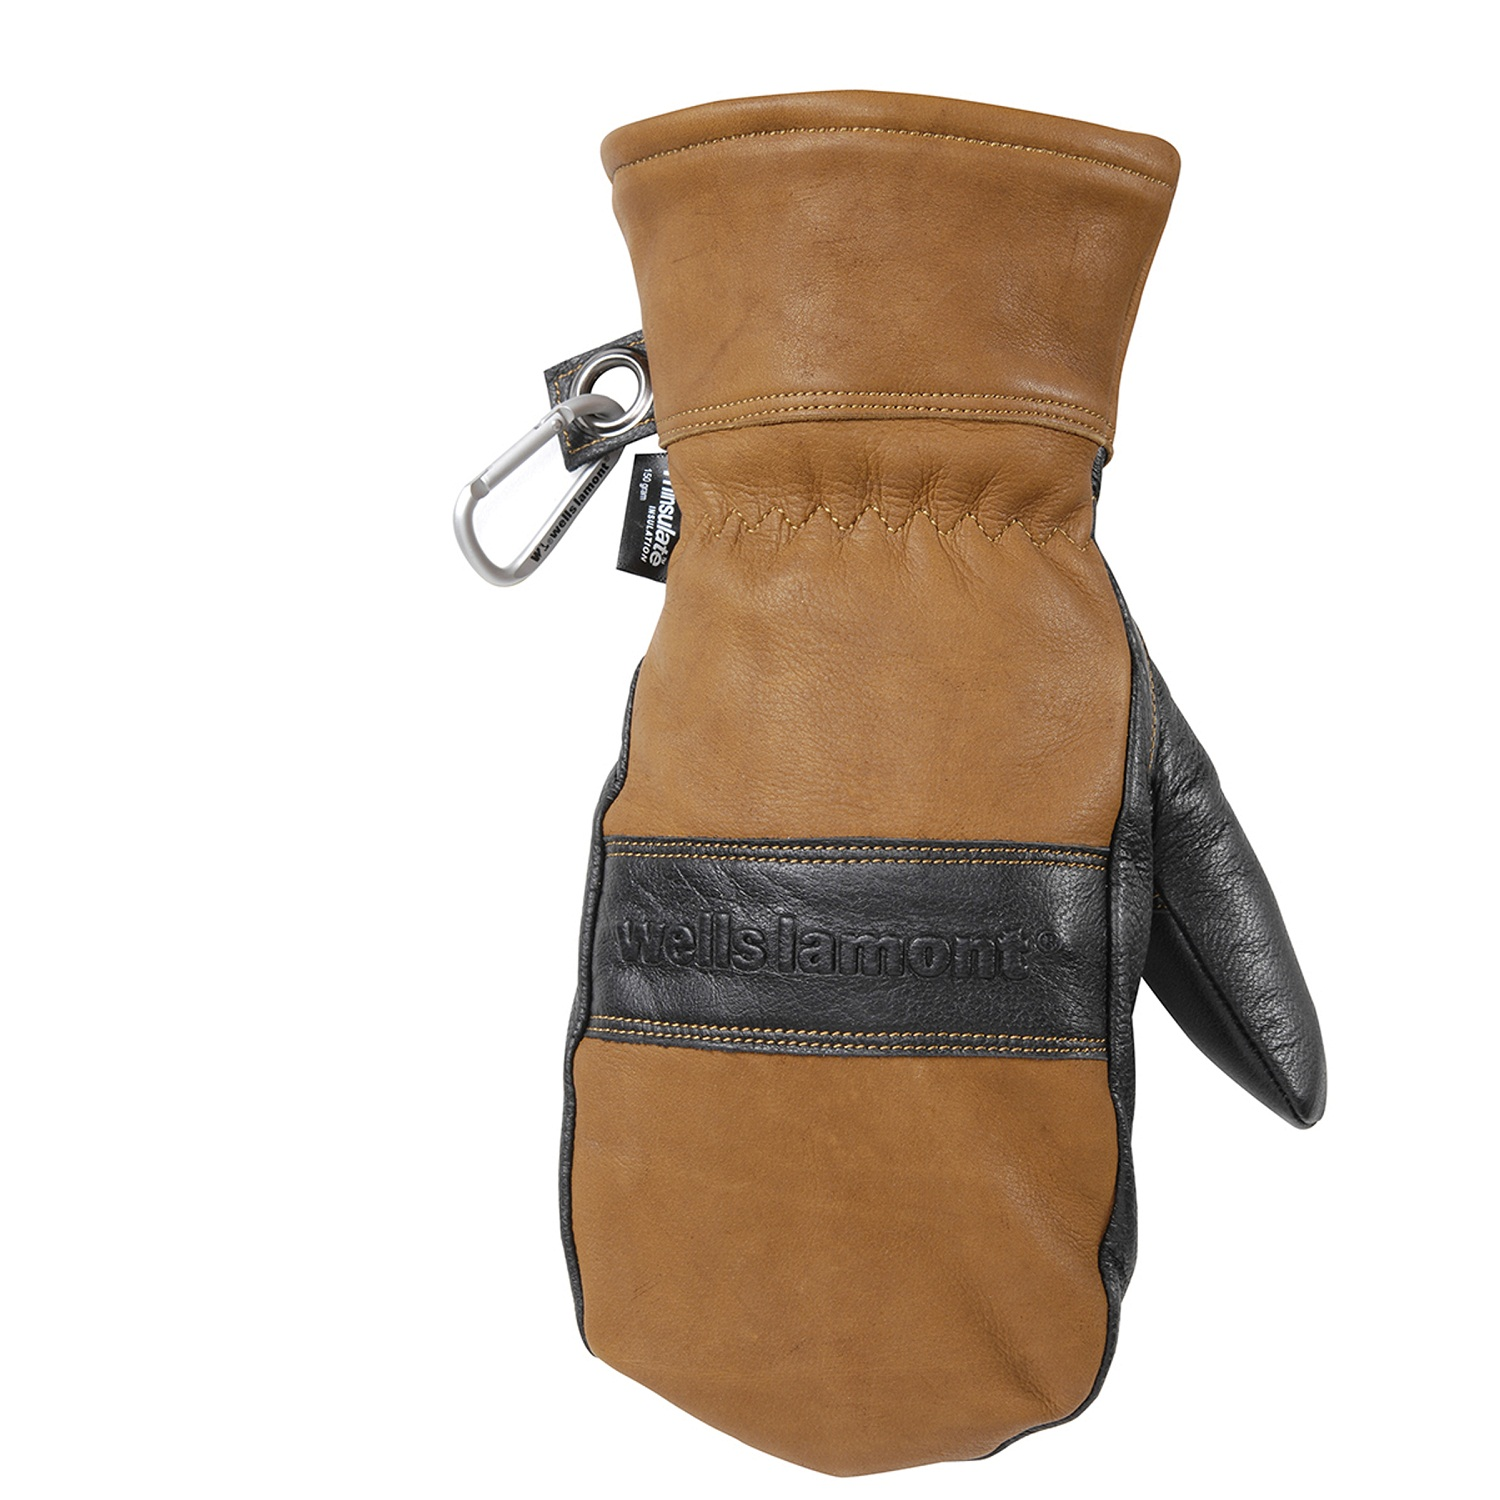 WELLS LAMONT HydraHyde Mens Full Grain Leather WP Mitten L